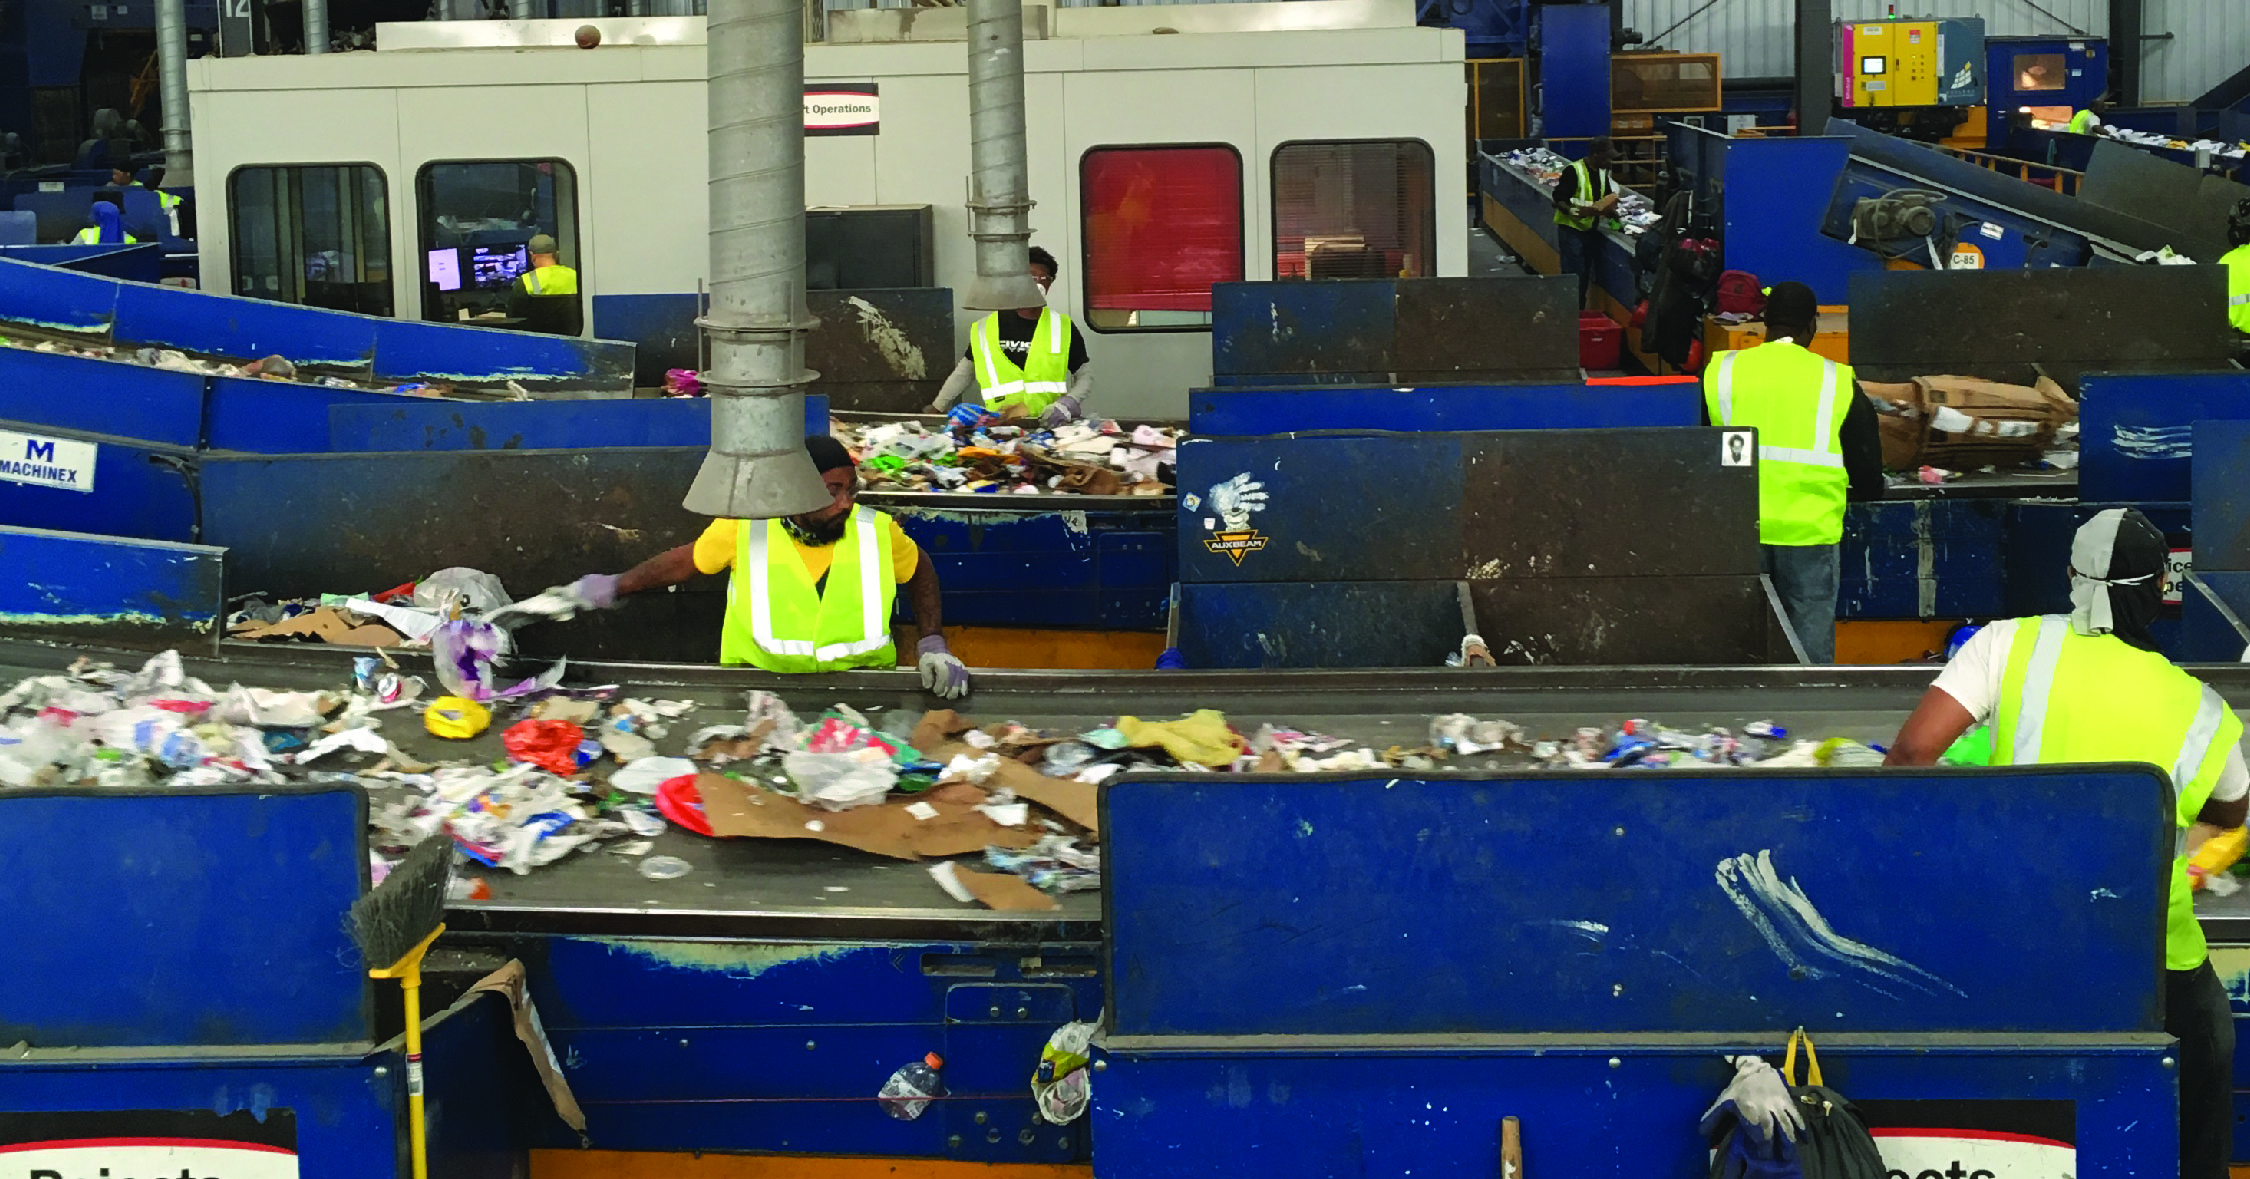 Packaging Professionals, Why Visiting a Recycling Facility Can Benefit You